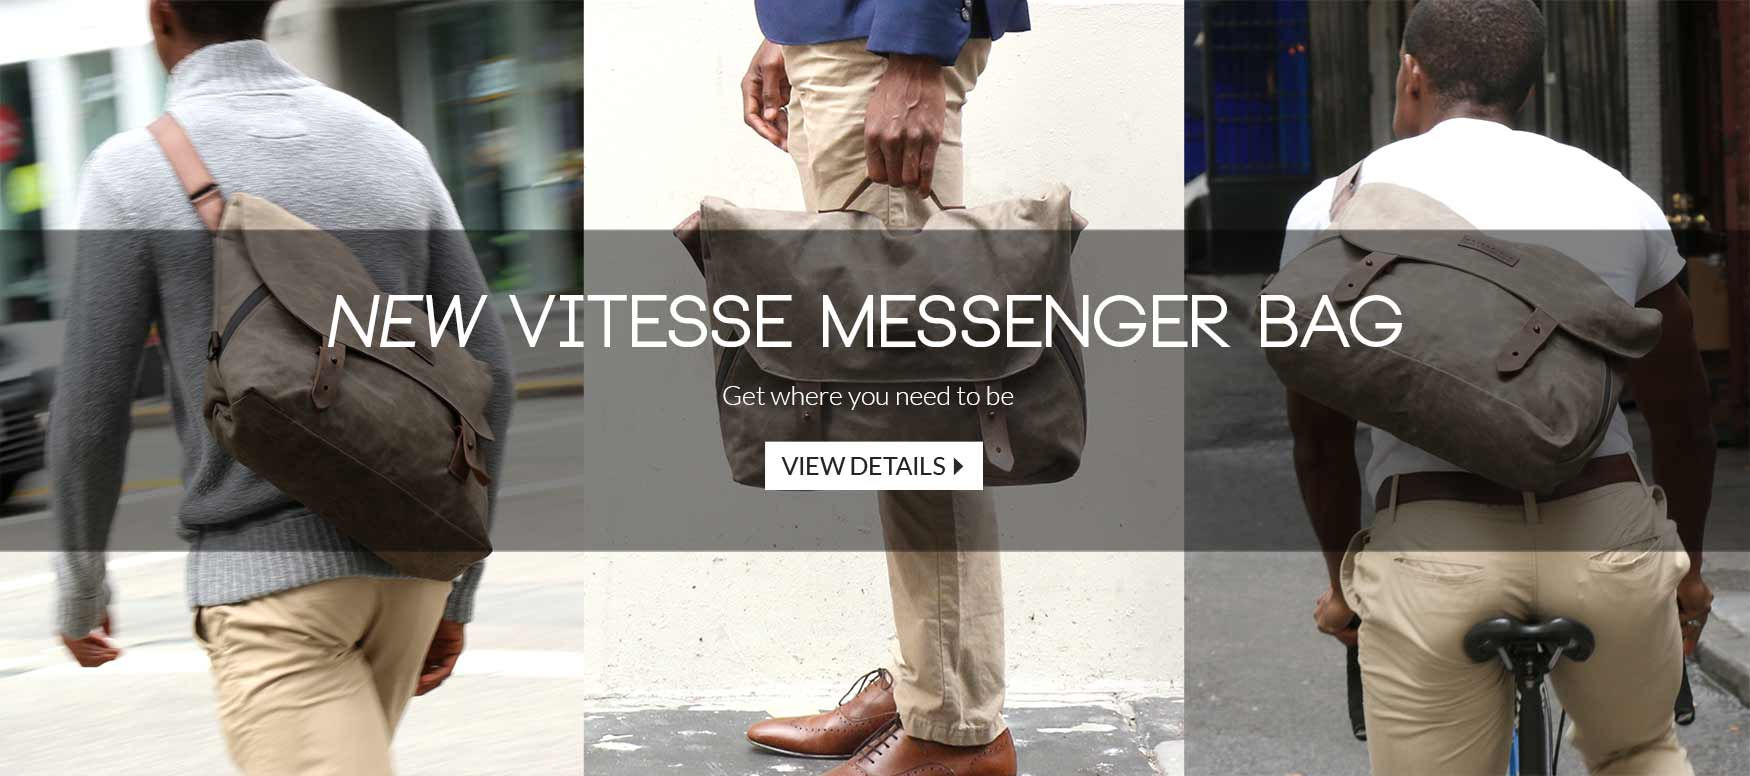 Vitesse Messenger Bag